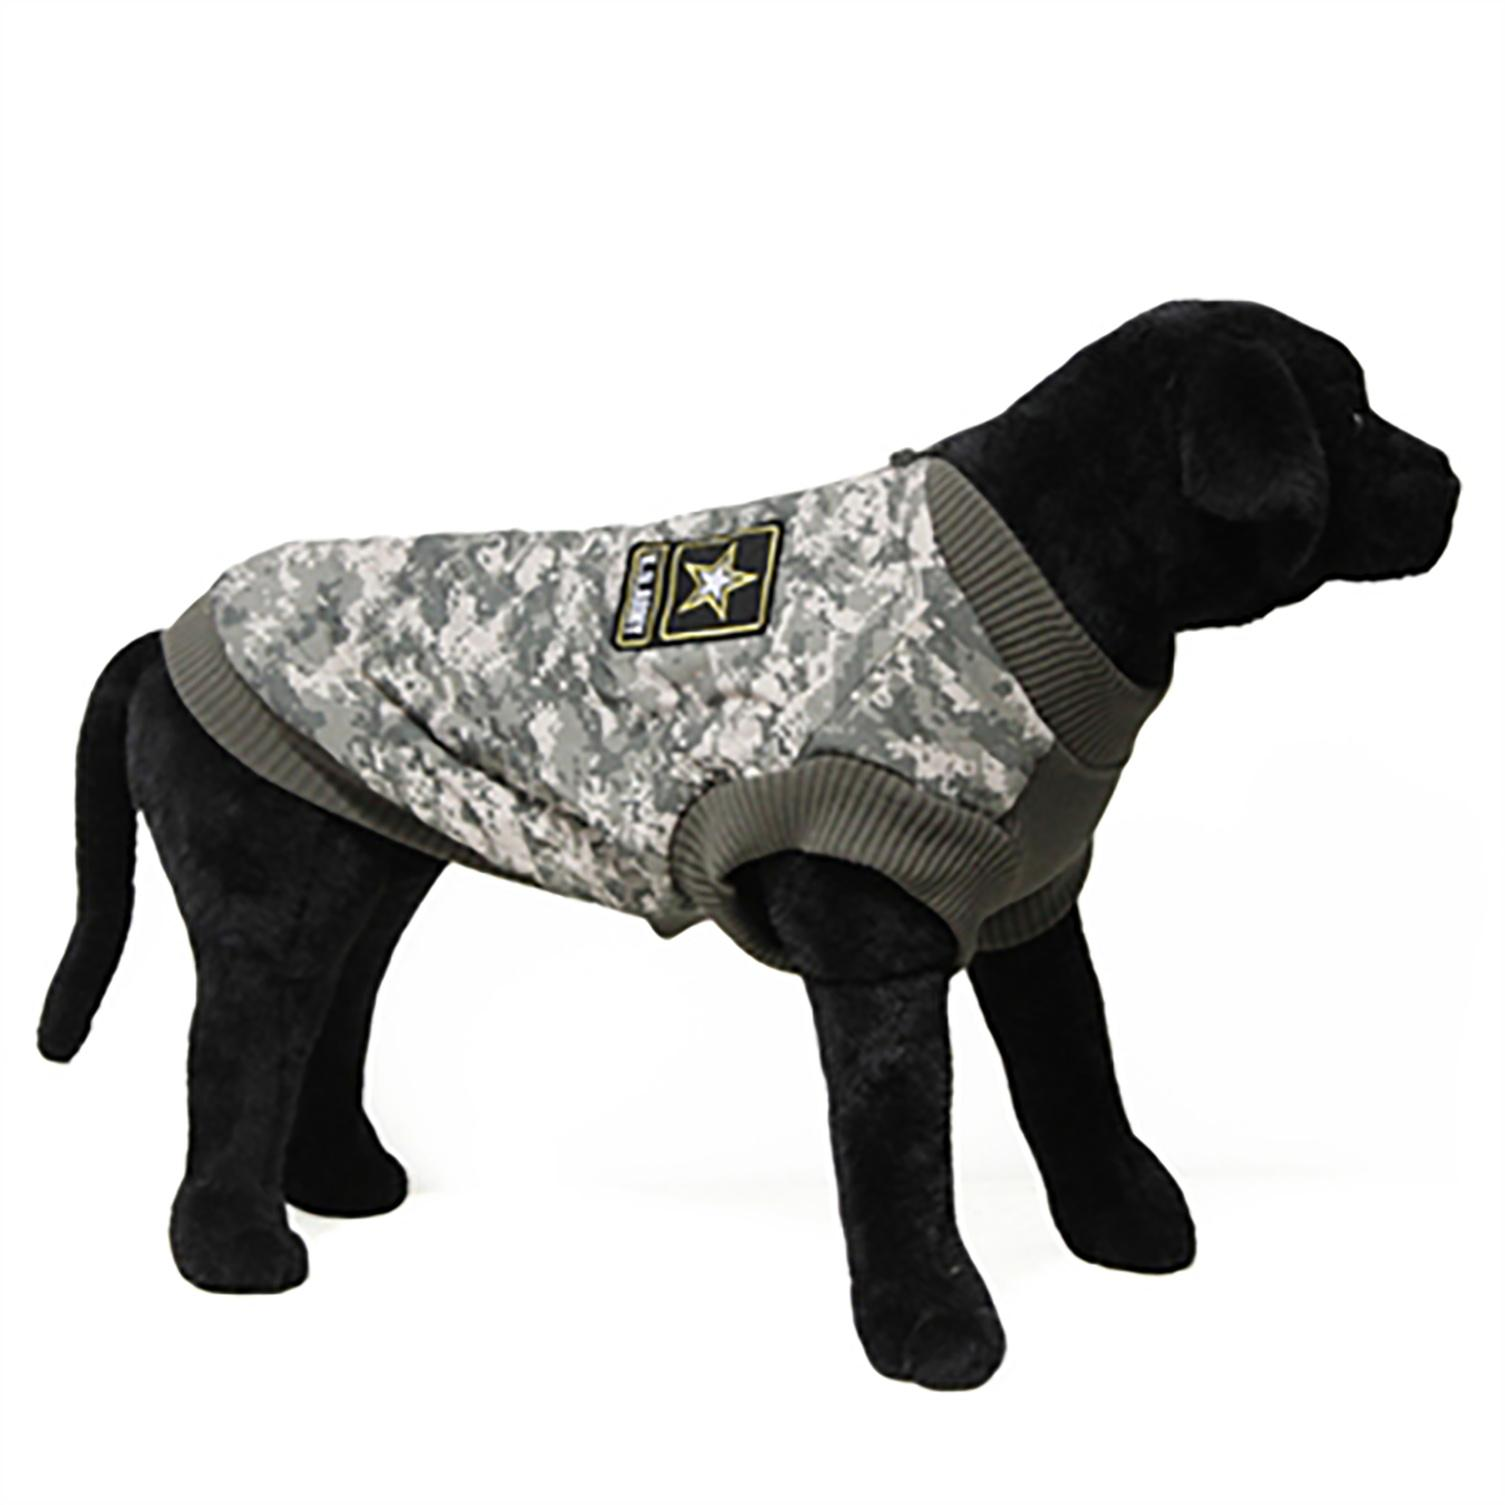 Big Dog Bomber Camo Dog Vest by Gooby - Green